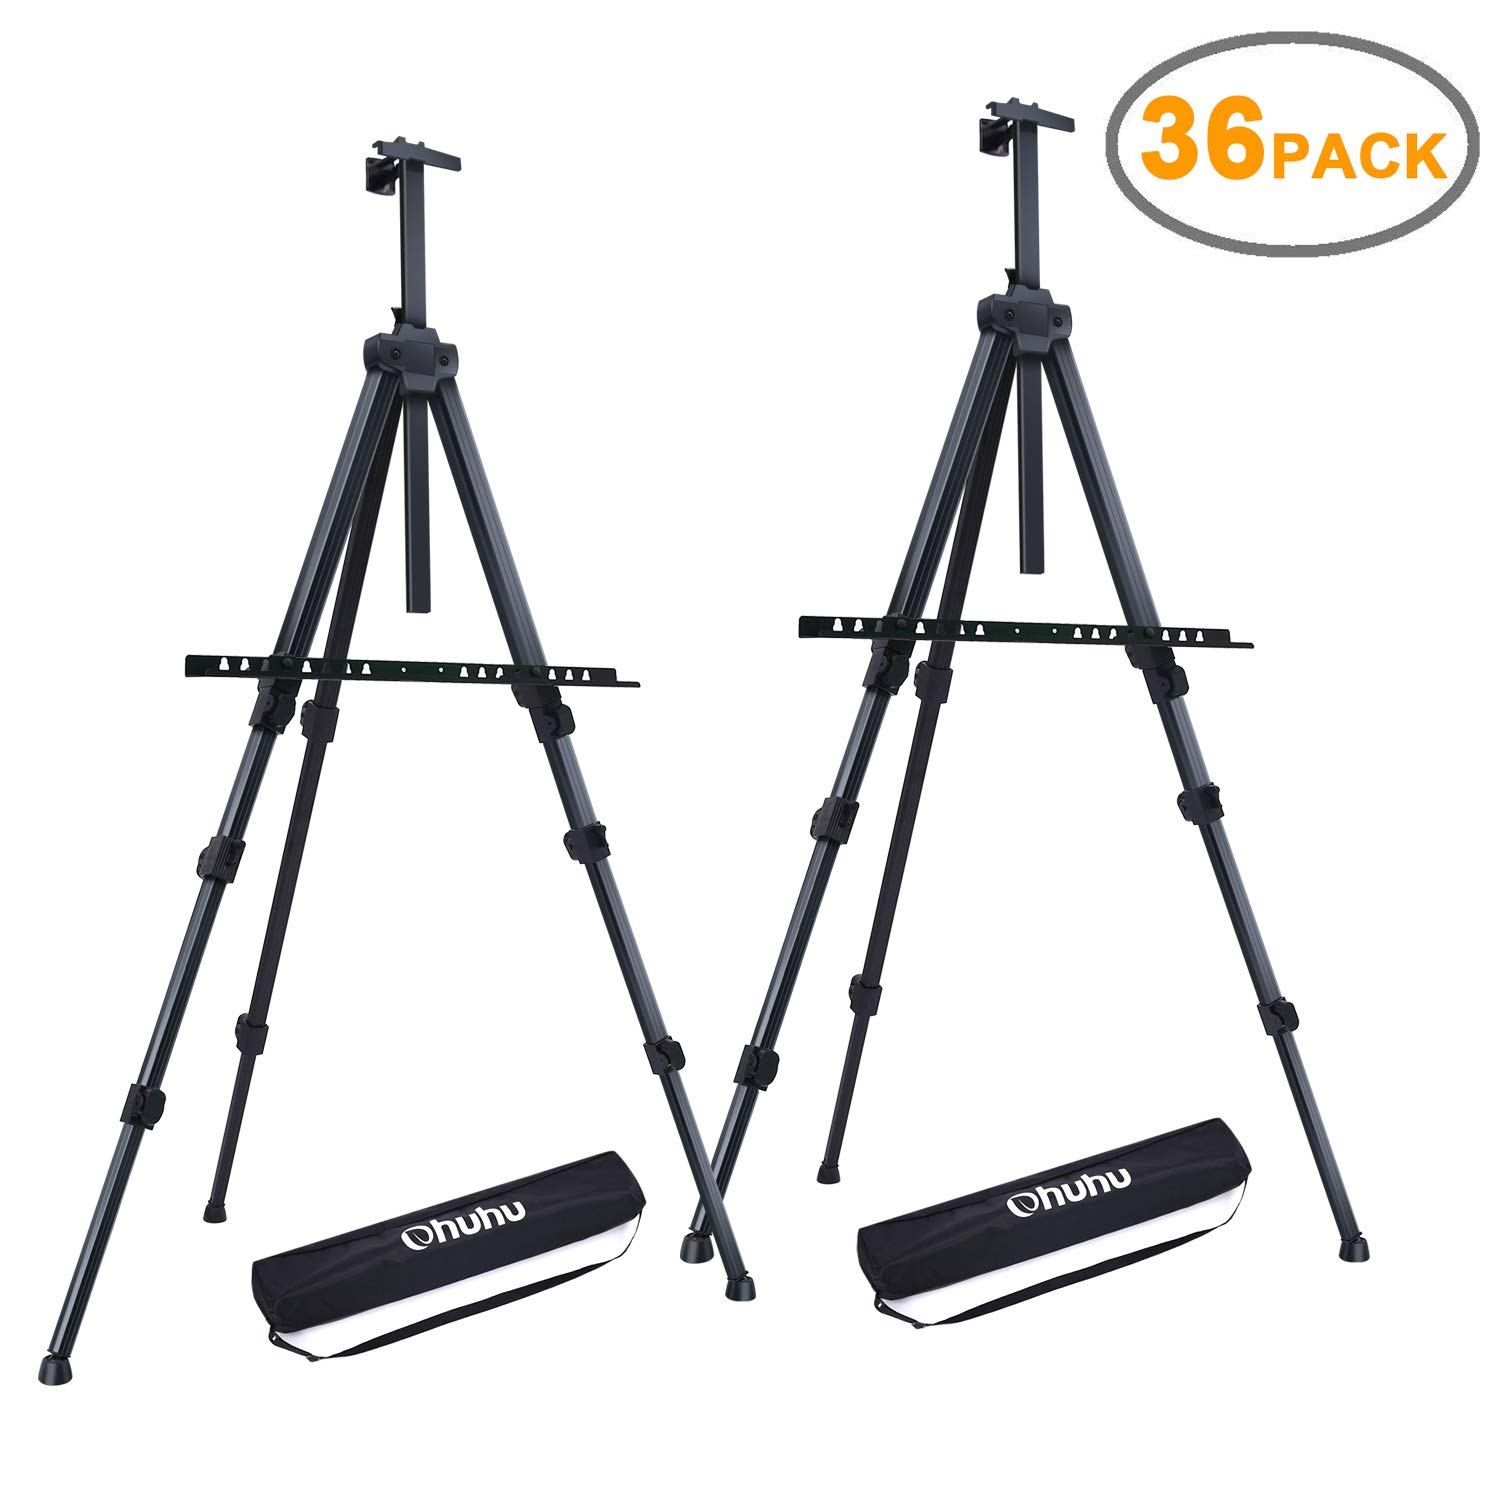 Display Easel Stand, Ohuhu 36-Pack 72'' Aluminum Metal Tripod Field Easel with Bag for Table-Top/Floor, Black Art Easels W/Adjustable Height from 25-72'' for Poster, Paint Back to School